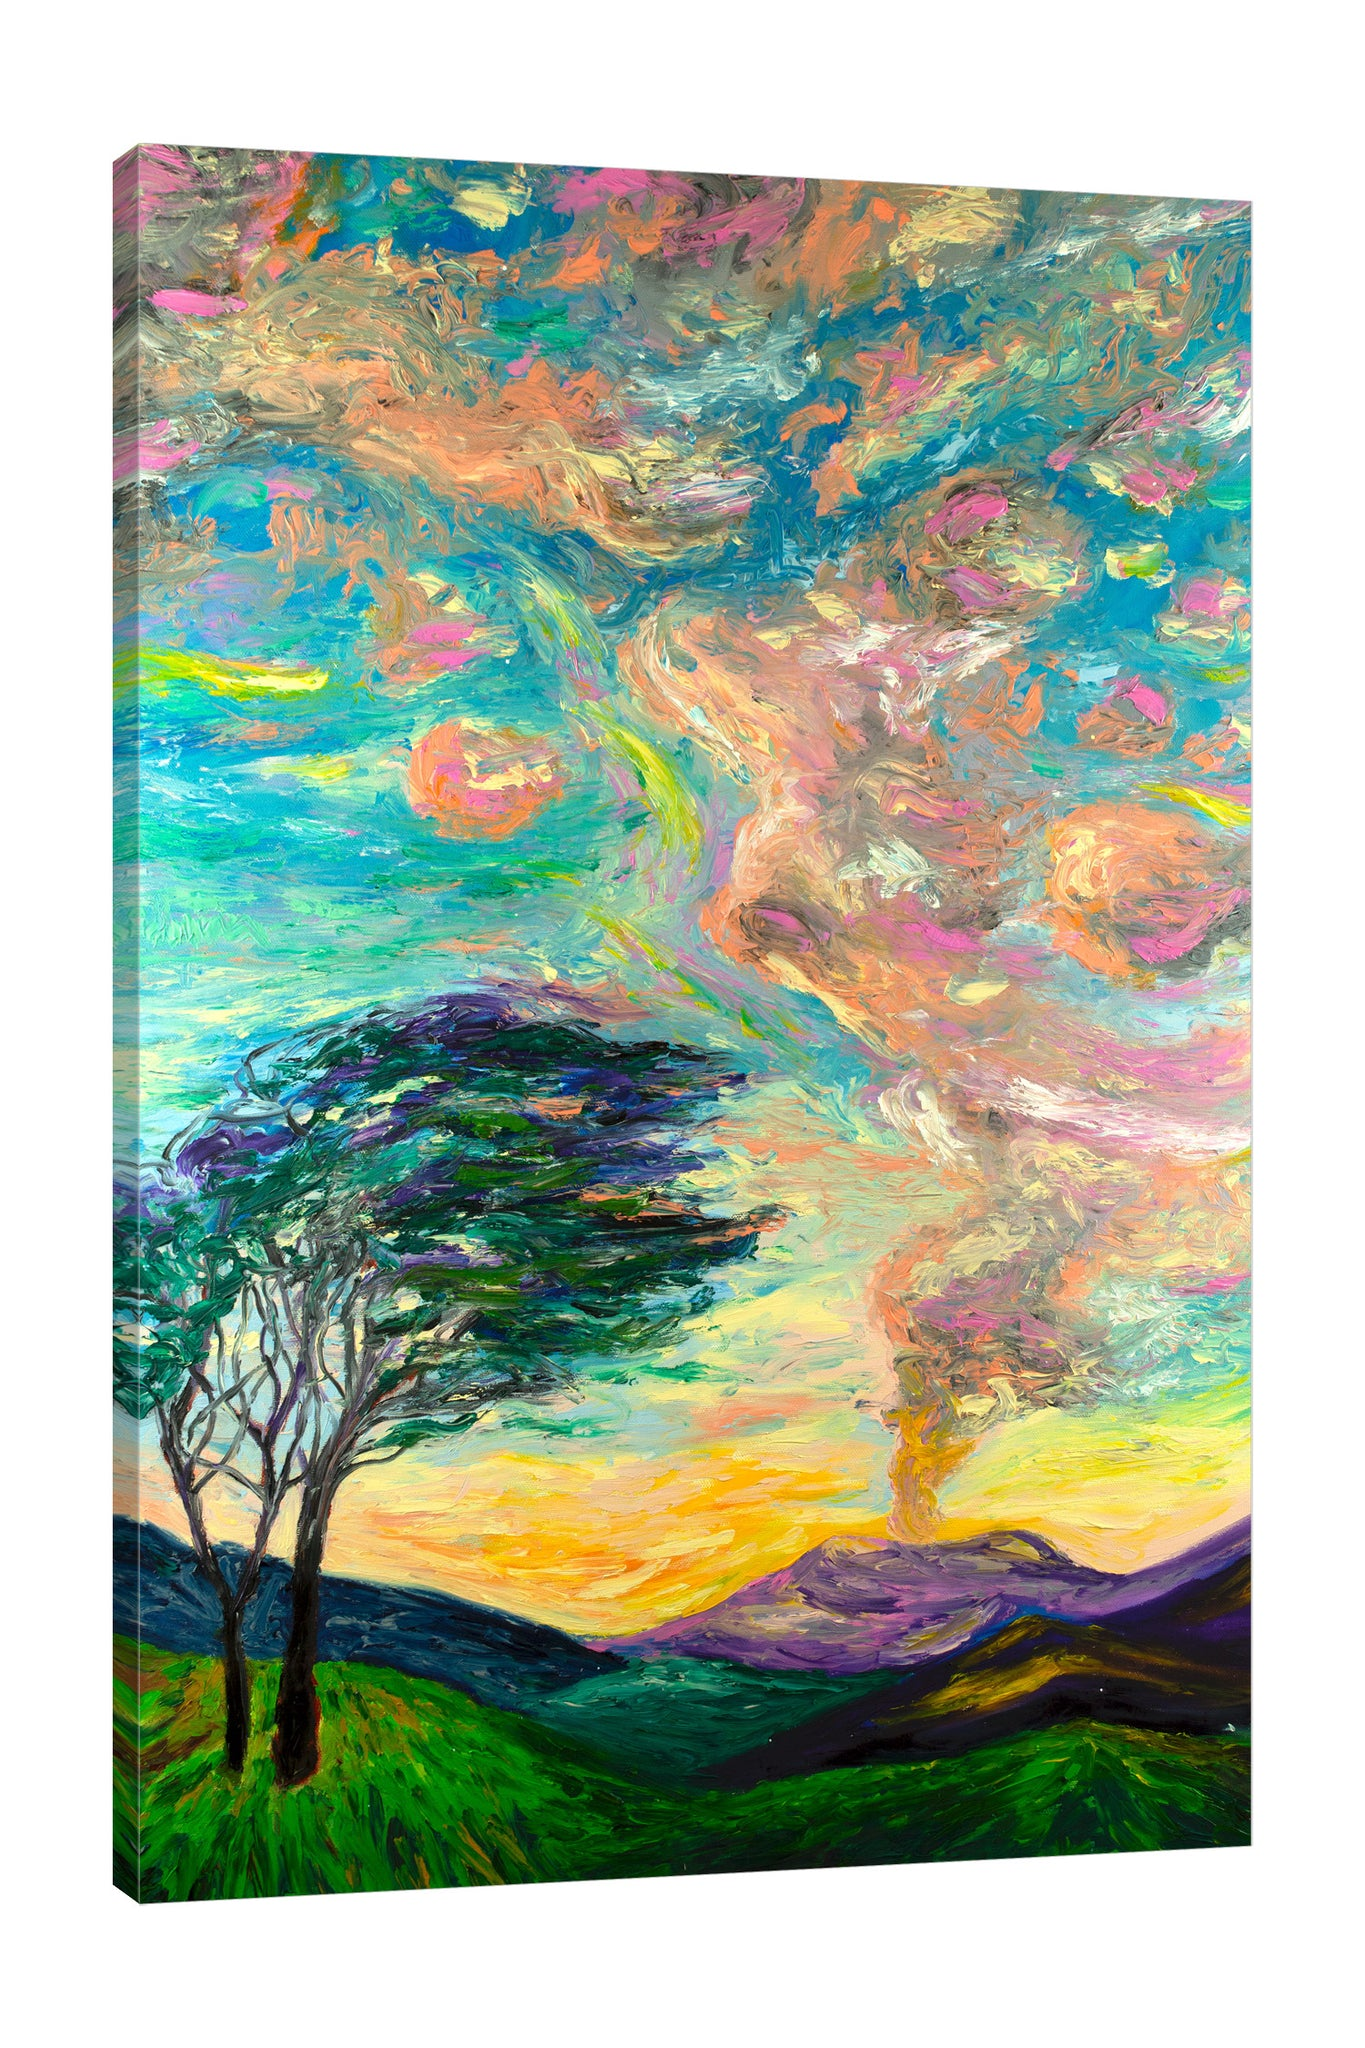 Chiara-Magni,Modern & Contemporary,Landscape & Nature,Finger-paint,trees,portrait,clouds,skies,mountain,green,teal,tree,